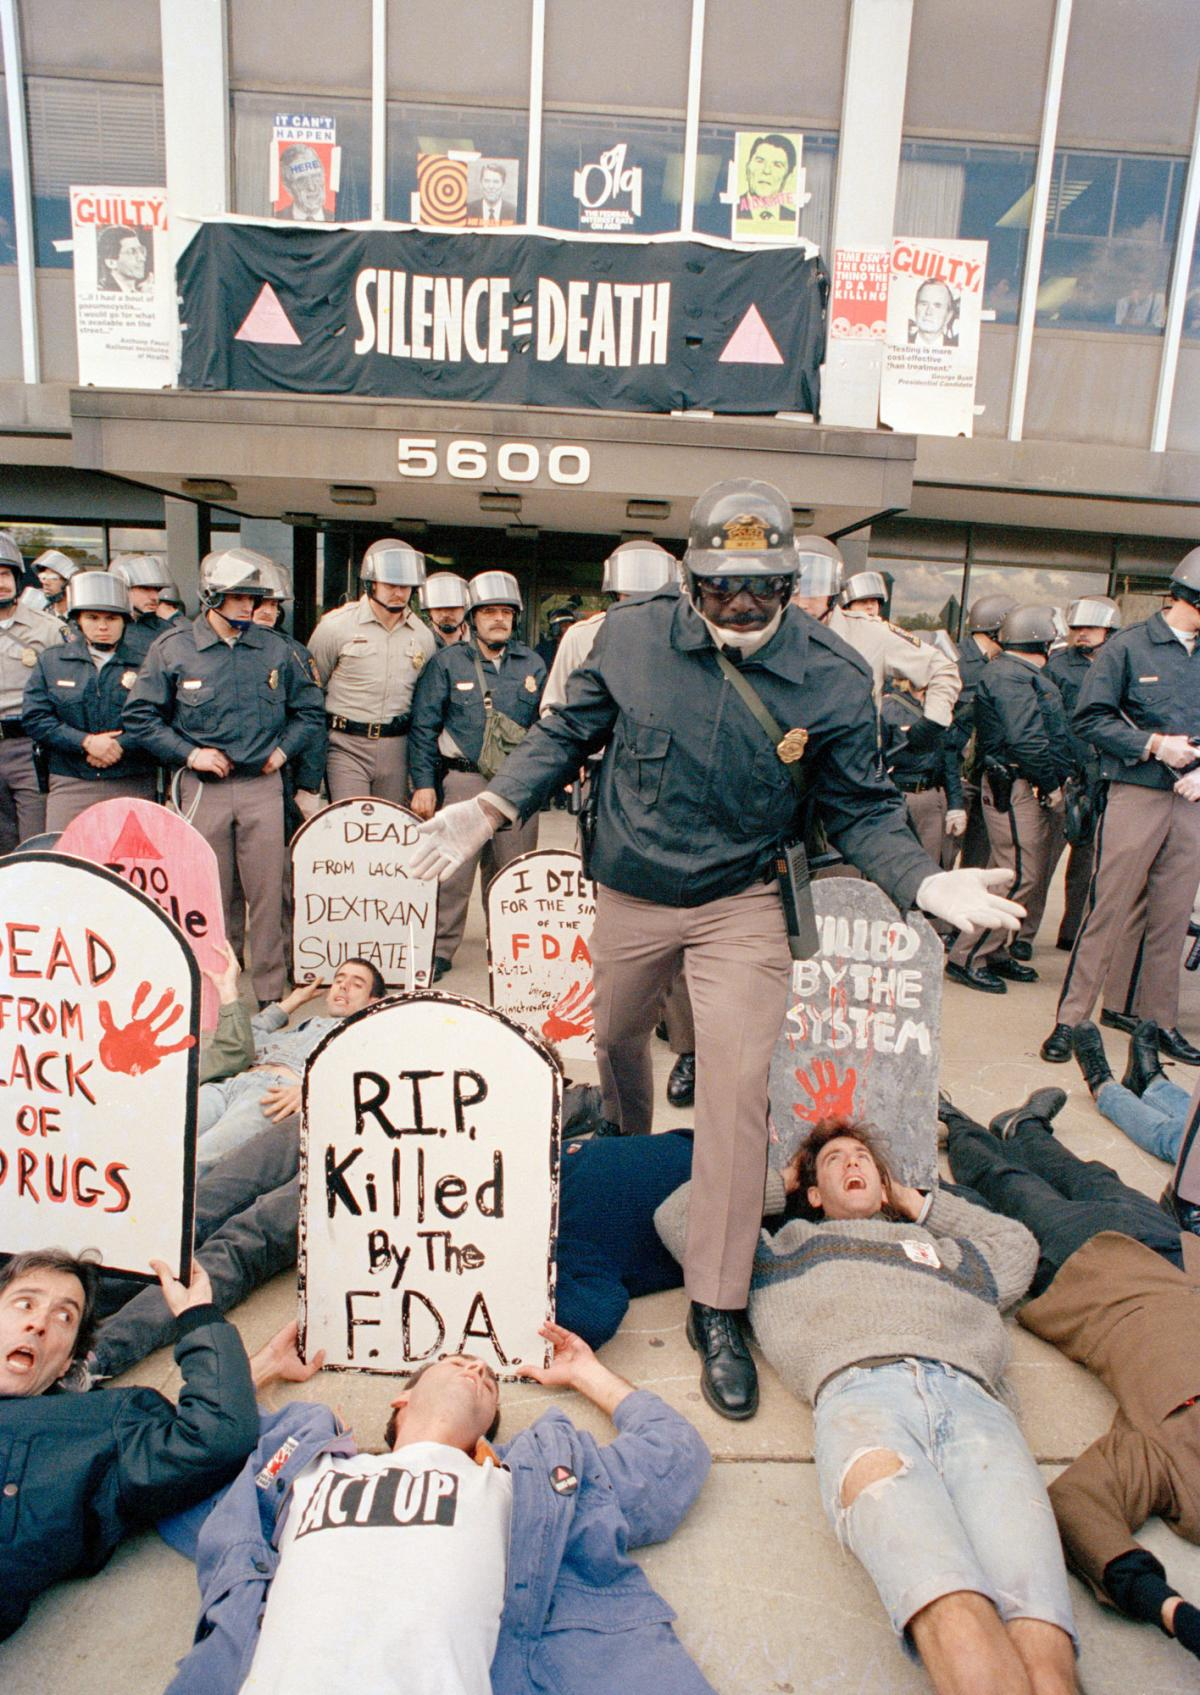 Demonstrators from the organization ACT UP protest in front of the headquarters of the Food and Drug Administration. The FDA opened up access to experimental drugs soon after.